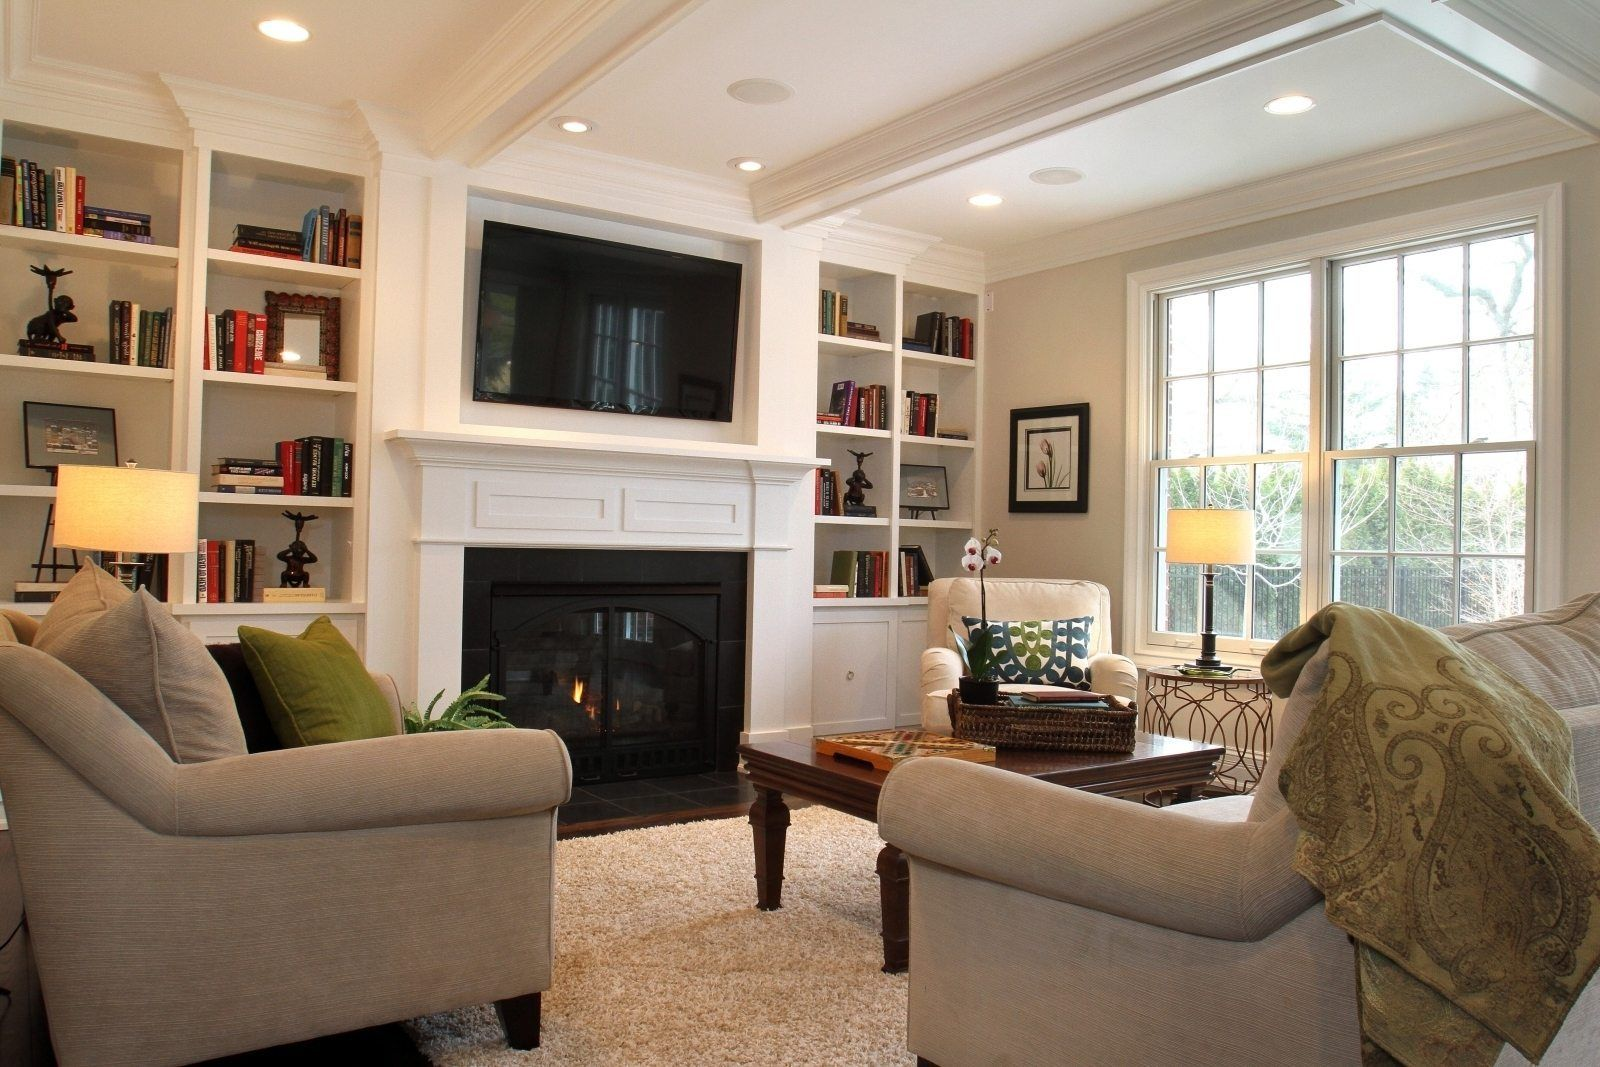 29 Modern And Traditional Living Room Cabinet Design Ideas Small Family Room Family Room Layout Family Room Decorating